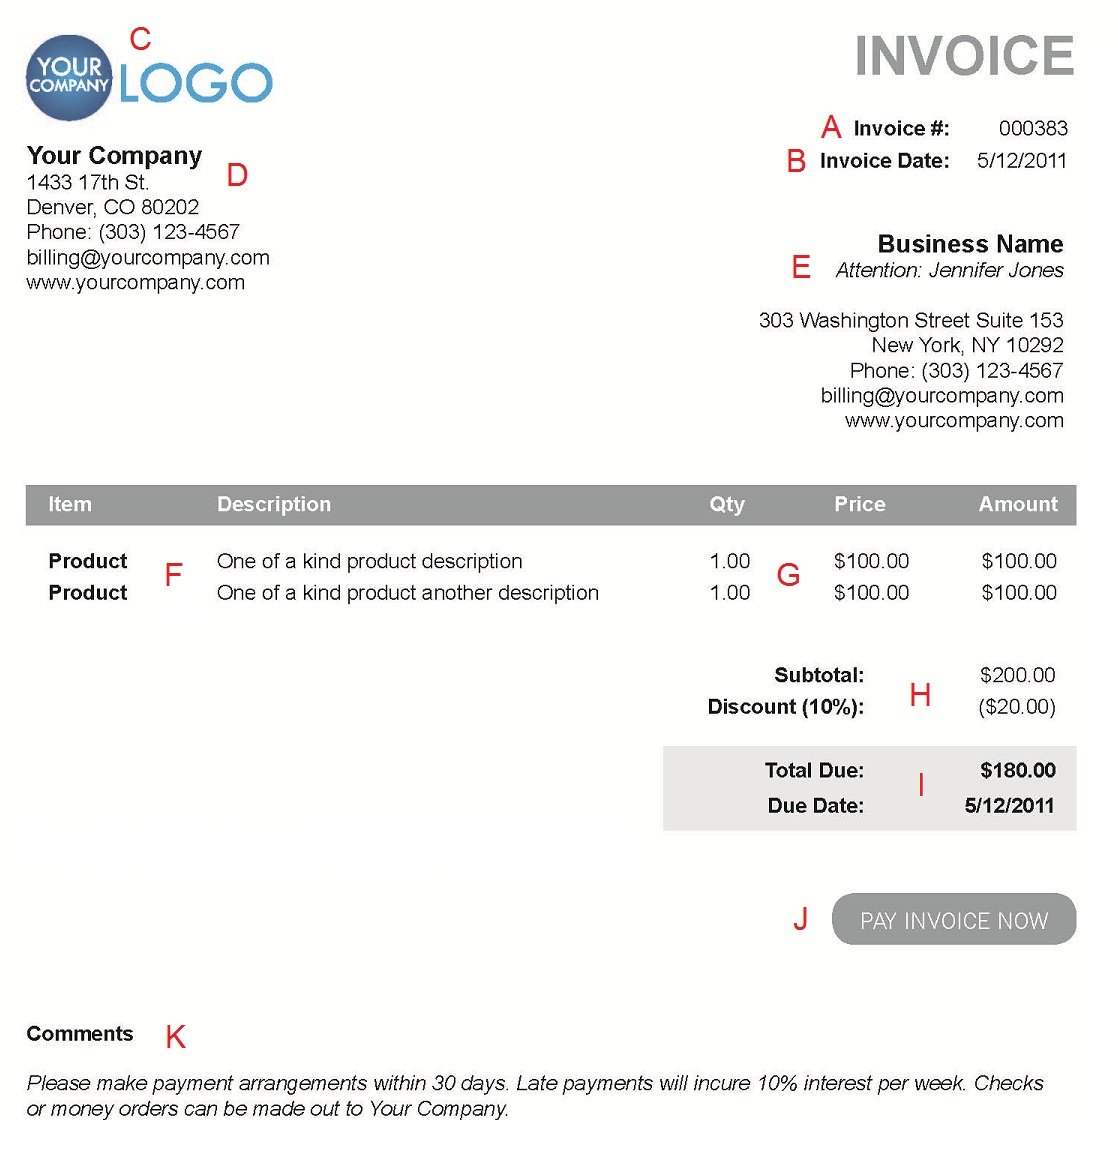 Centralasianshepherdus  Splendid The  Different Sections Of An Electronic Payment Invoice With Fascinating A  With Captivating Job Invoice Also Landscaping Invoice Template In Addition Free Downloadable Invoice Template For Word And Free Invoice Format In Word As Well As How To Pay Ebay Invoice Additionally Invoice Supplier From Paysimplecom With Centralasianshepherdus  Fascinating The  Different Sections Of An Electronic Payment Invoice With Captivating A  And Splendid Job Invoice Also Landscaping Invoice Template In Addition Free Downloadable Invoice Template For Word From Paysimplecom